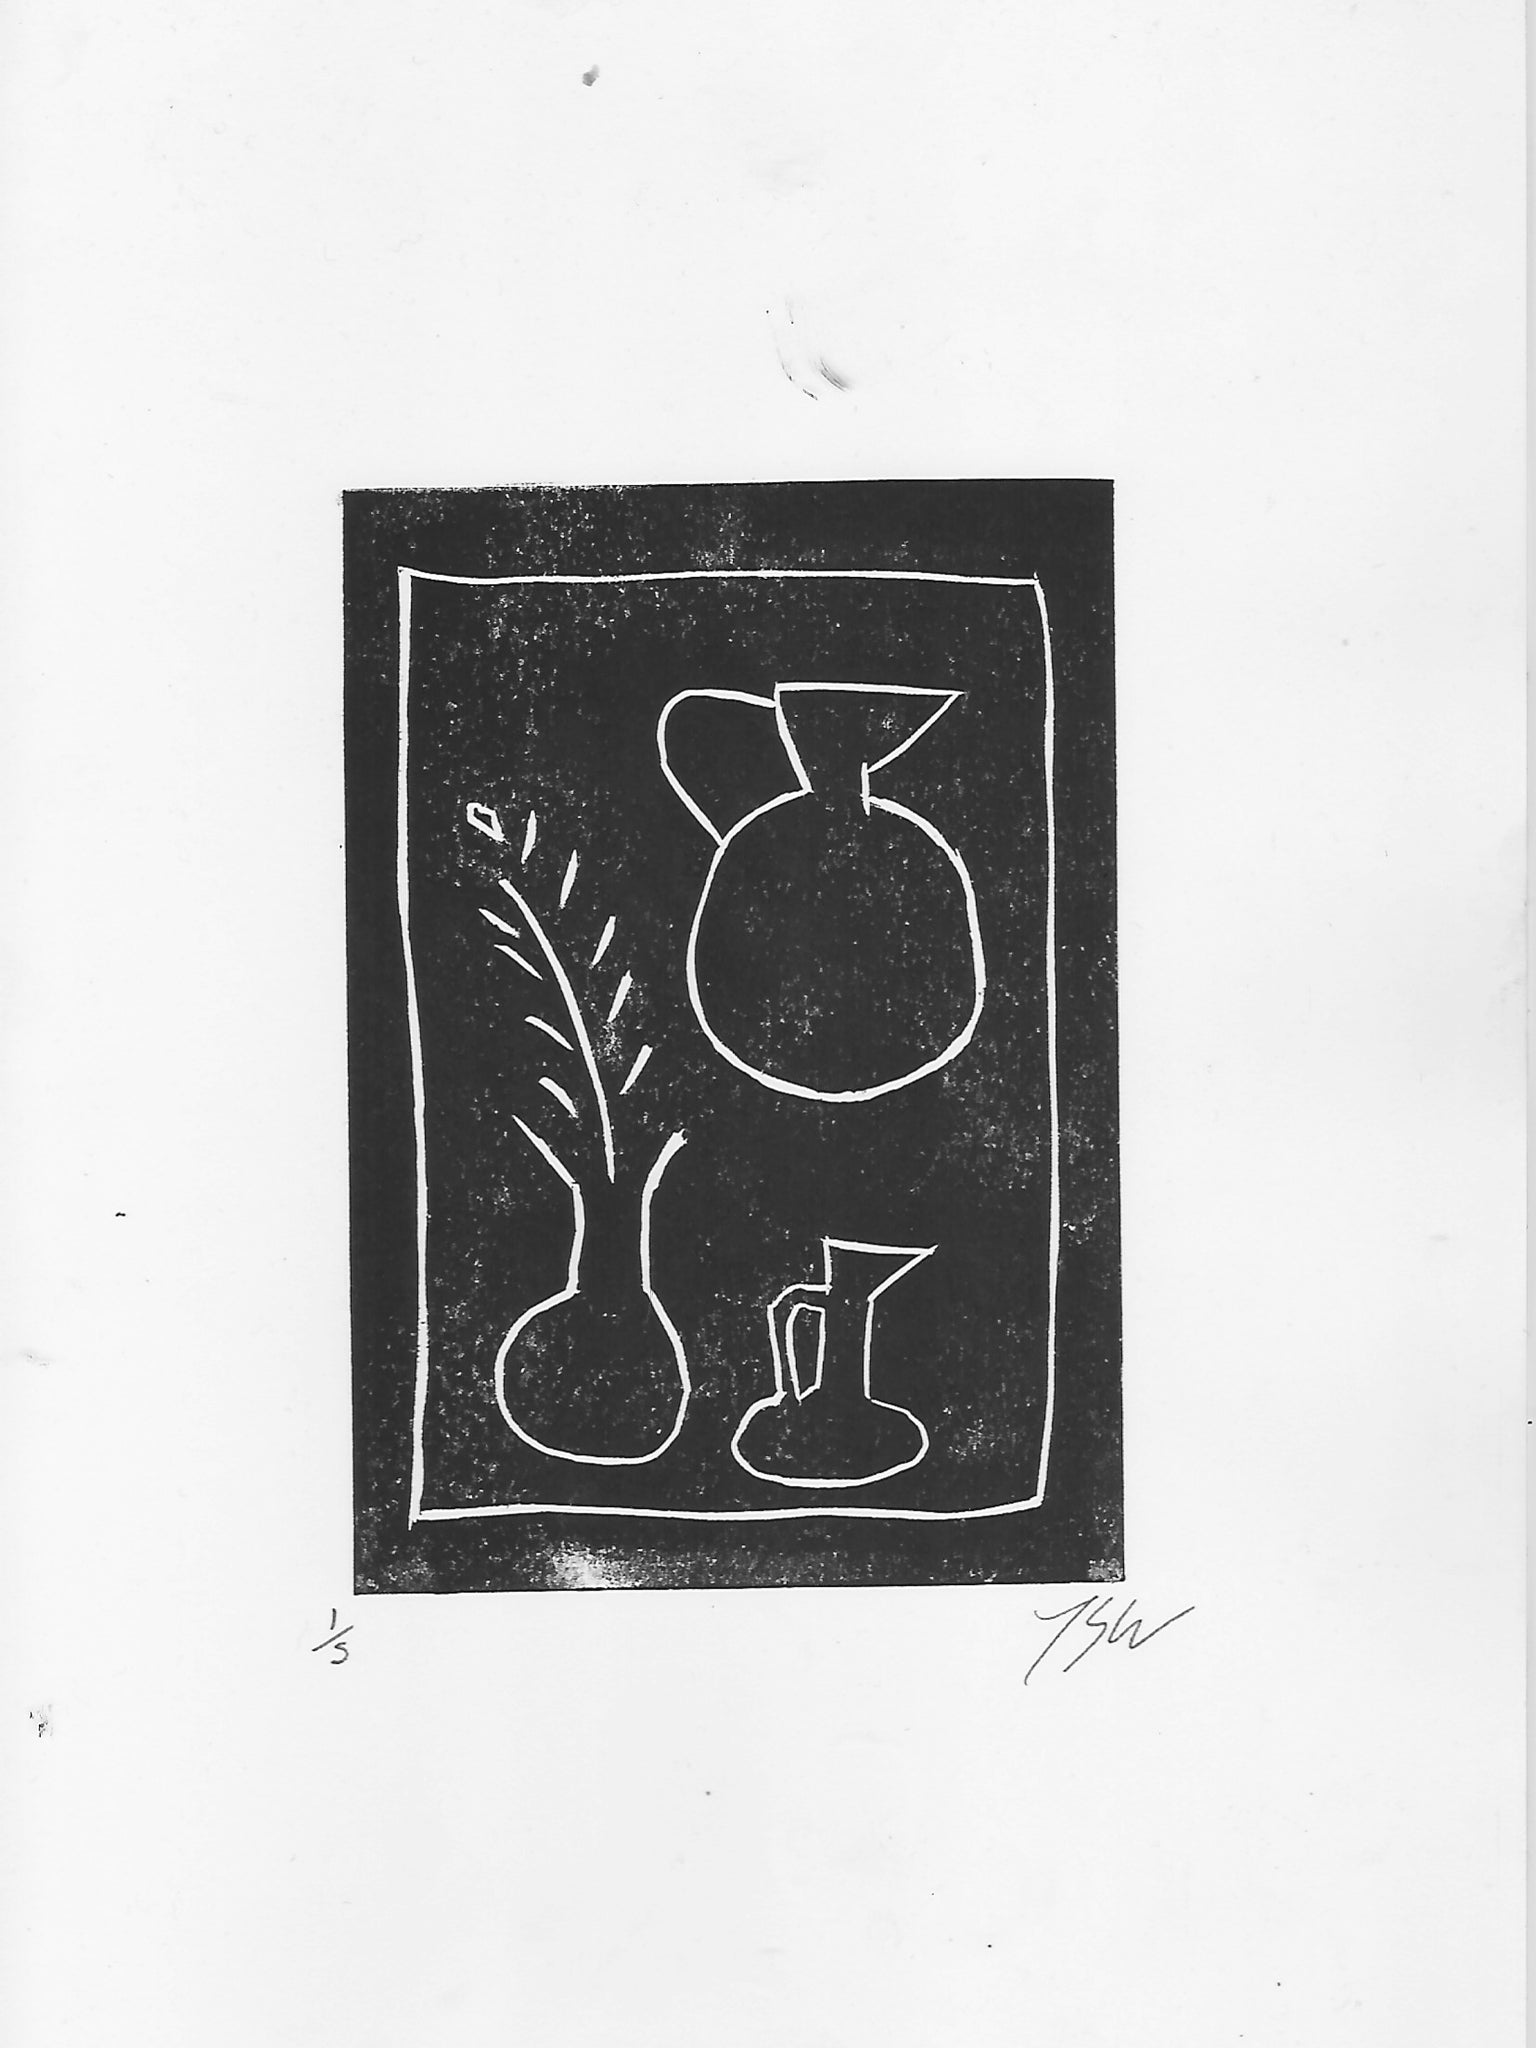 Vase, plant, and sun - By James Wilson